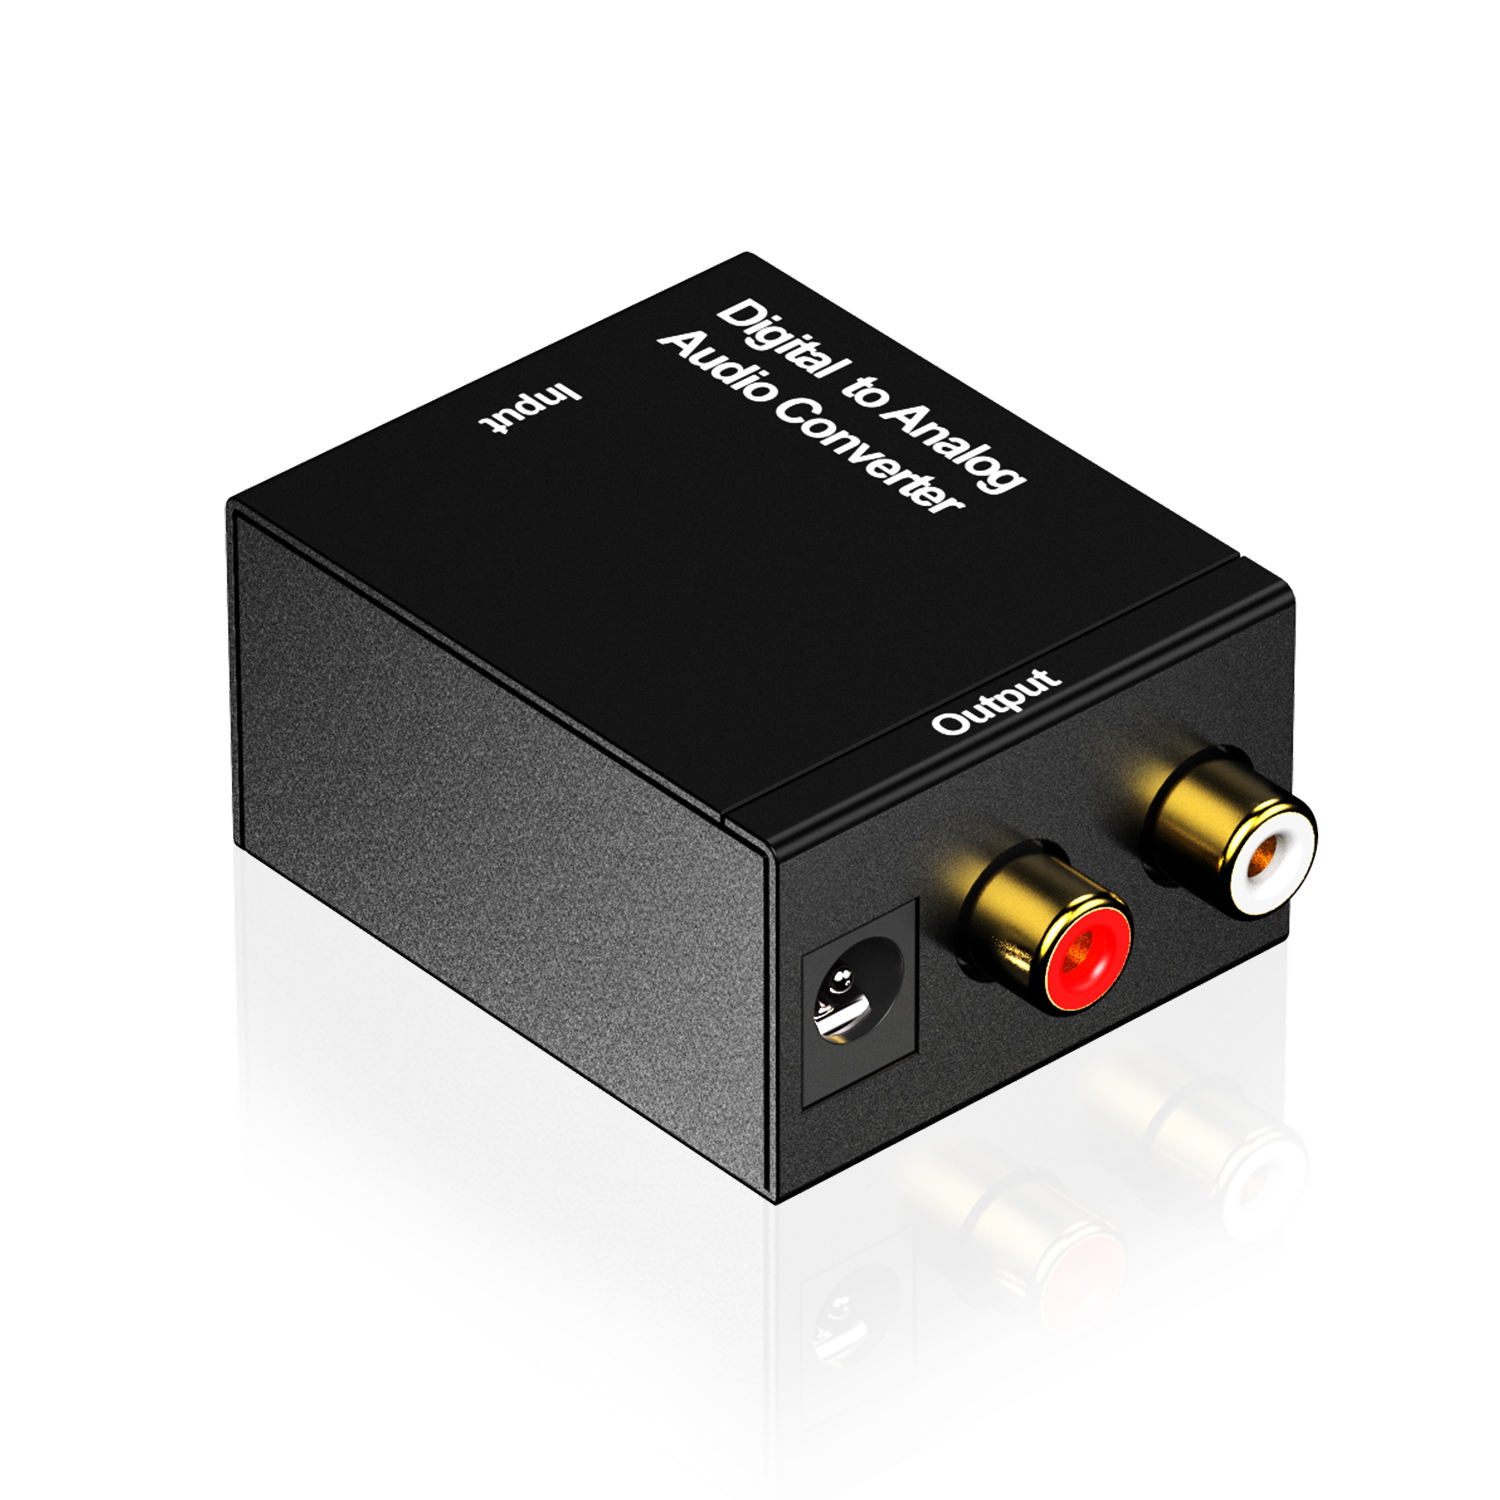 Hot Selling New Arrival 3.5MM Optical Coaxial Digital to Analog Audio Converter DAC Digital Toslink to Analog Stereo L/R Adapter